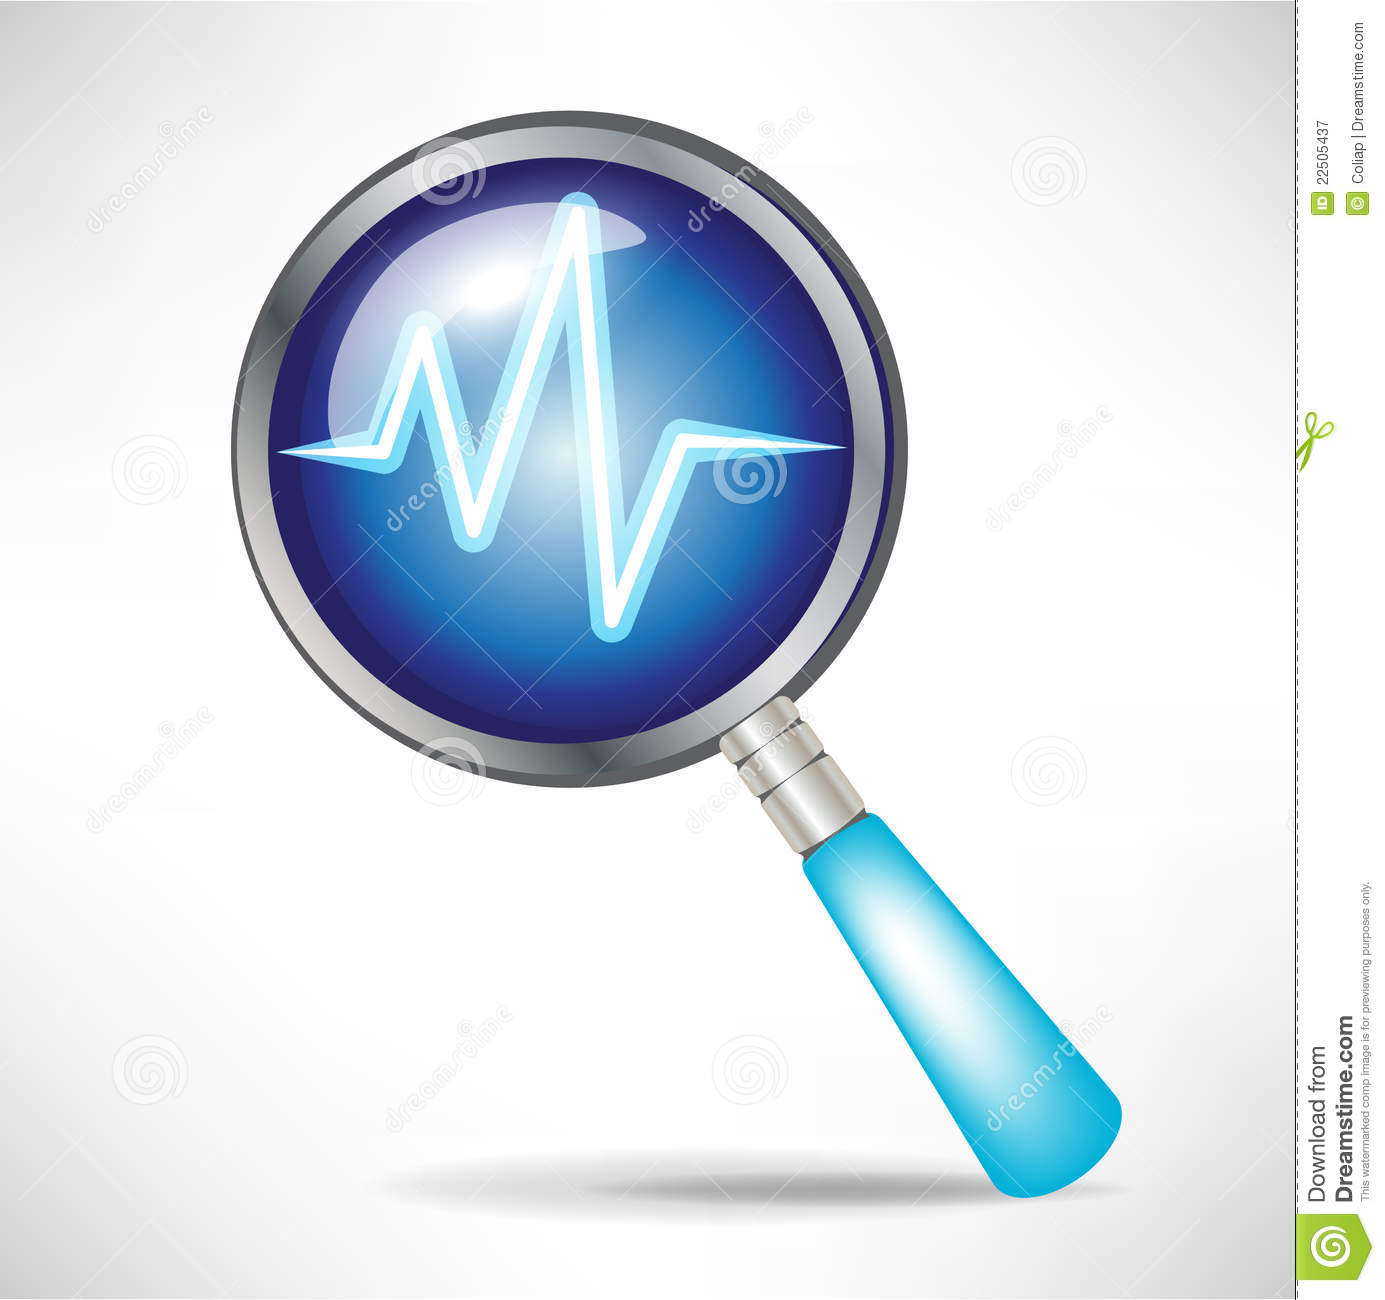 diagnostic icon royalty free stock photography image 22505437 magnifying glass vector illustrator vector png magnifying glass